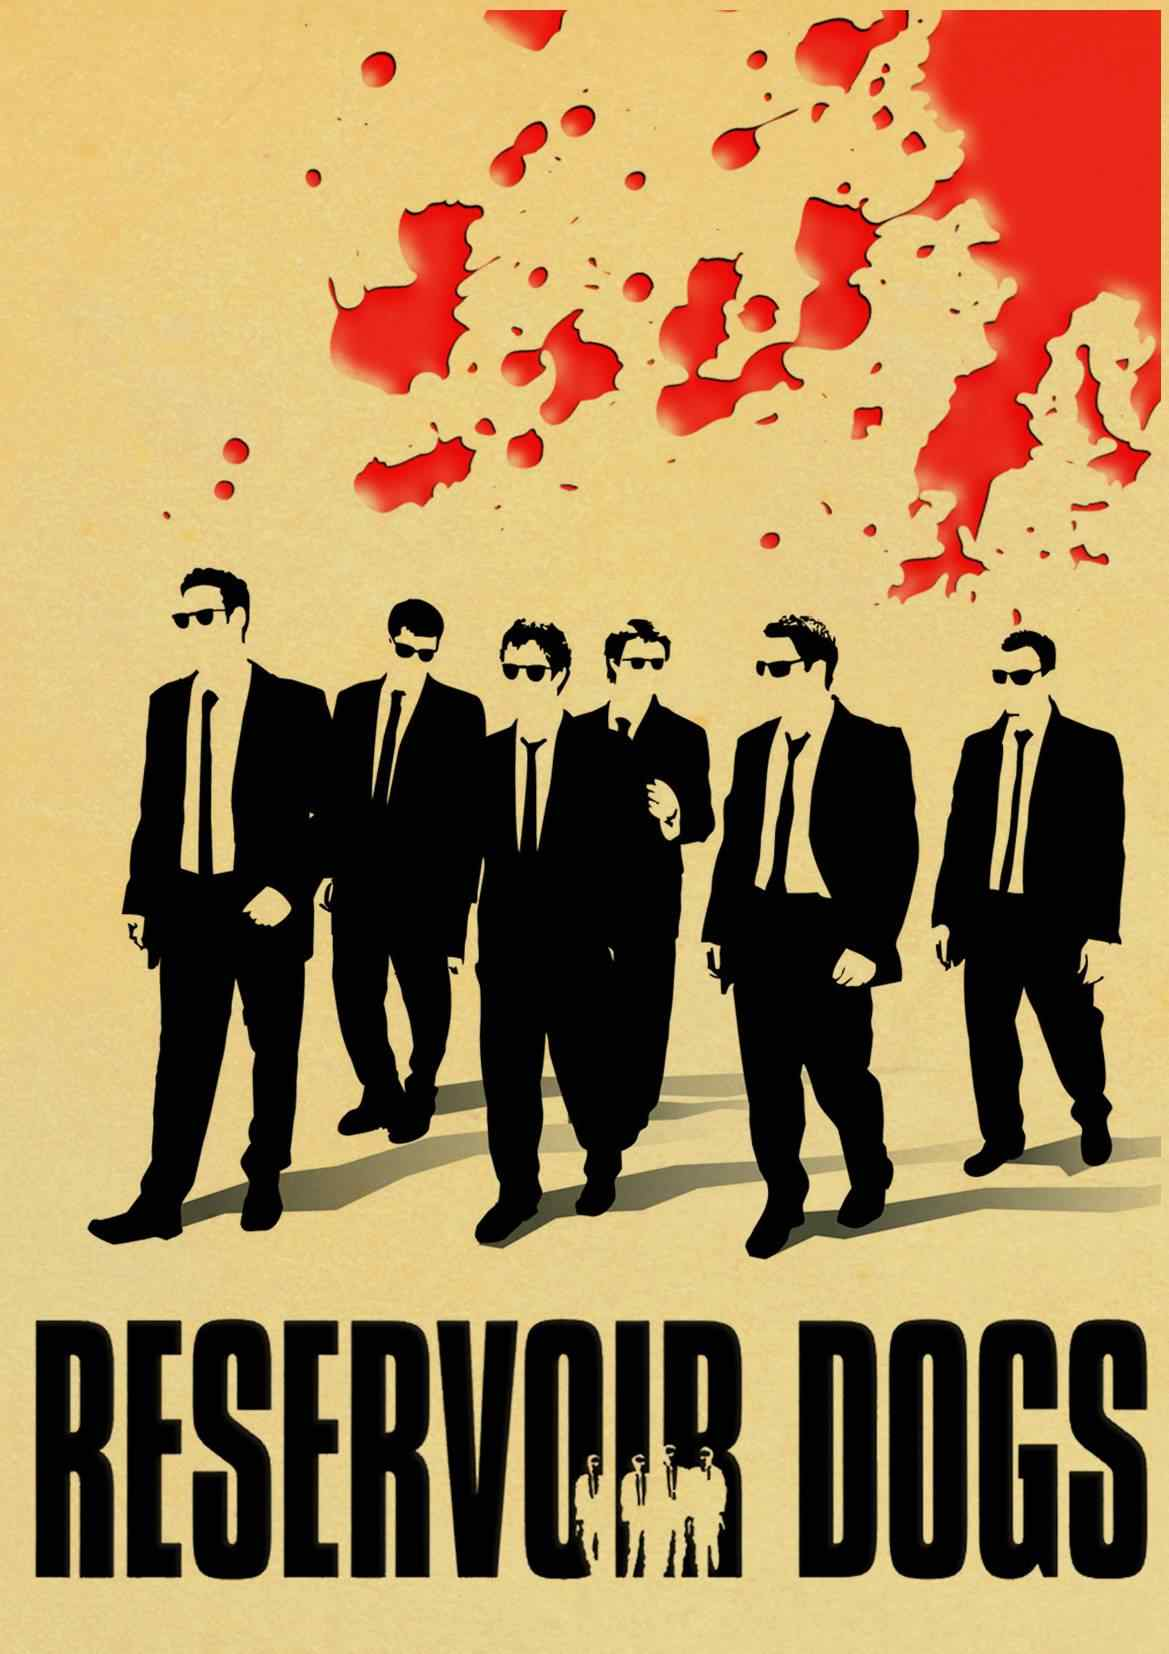 Reservoir Dogs (1992) - Directed by: Quentin TarantinoStarring: Harvey Keitel, Steve Buscemi, Michael Madsen, Tim Roth, Chris Penn, Lawrence TierneyRated: R for Strong Violence and LanguageRunning Time: 1h 40mTMM Score: 4.5 StarsSTRENGTHS: Writing, Cinematography, DirectingWEAKNESSES: Some Over Acting